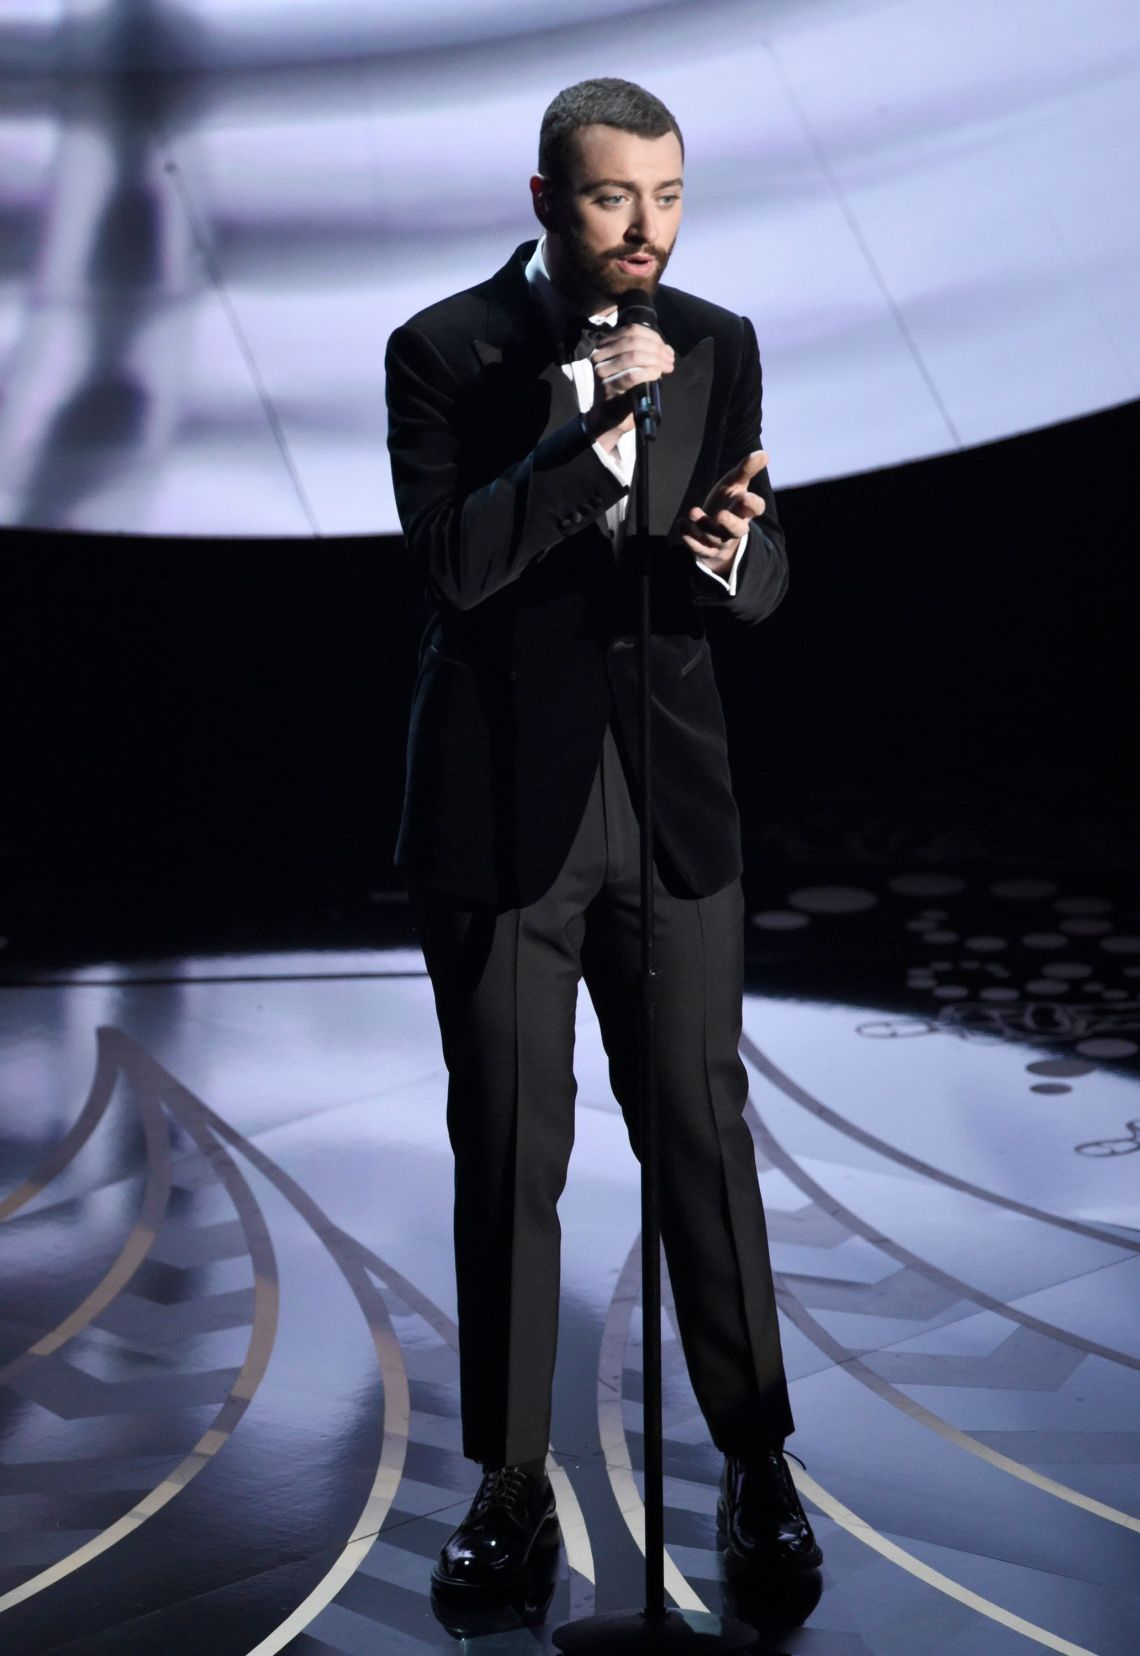 """Sam Smith made a huge blunder during his Academy Awards acceptance speech, describing himself as the """"first openly gay man to win an Oscar"""".His comments sparked a huge backlash, particularly from members of the LGBTQ+ community, including past Oscar-winning screenwriter Dustin Lance Black. Many called for him to know his LGBTQ+ history before speaking out on such a public platform."""